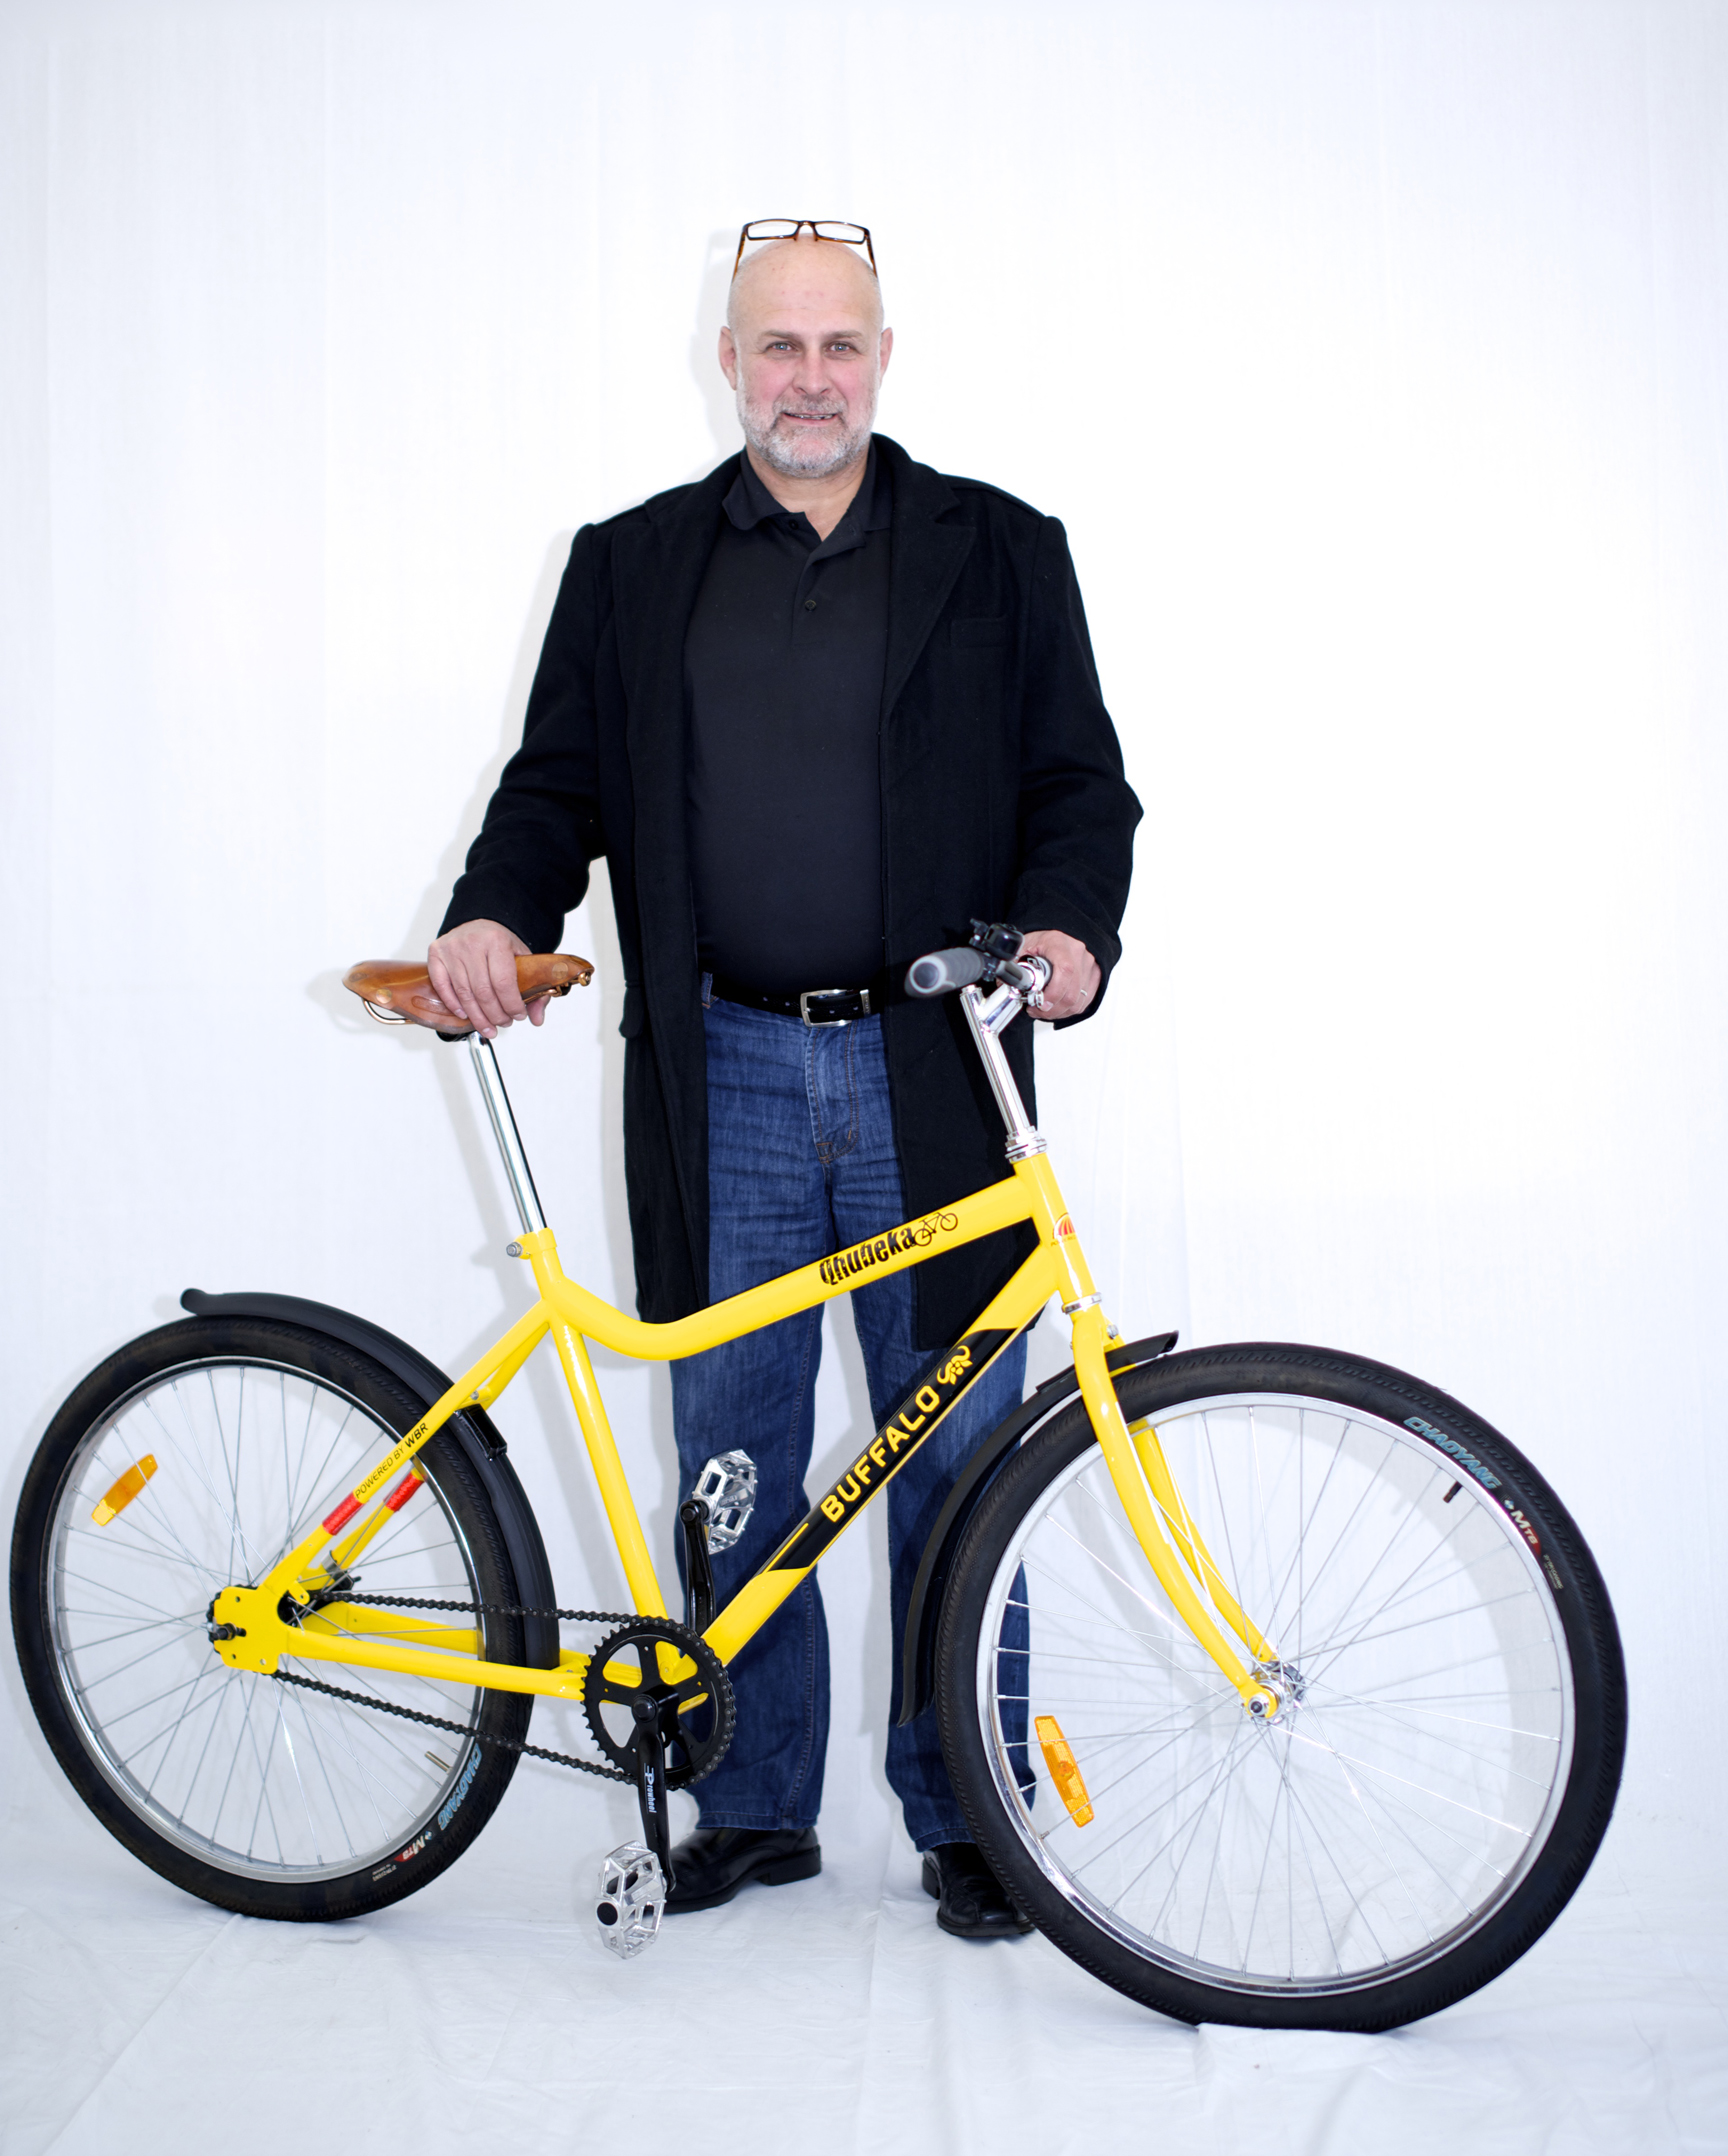 Anthony with Bicycle2